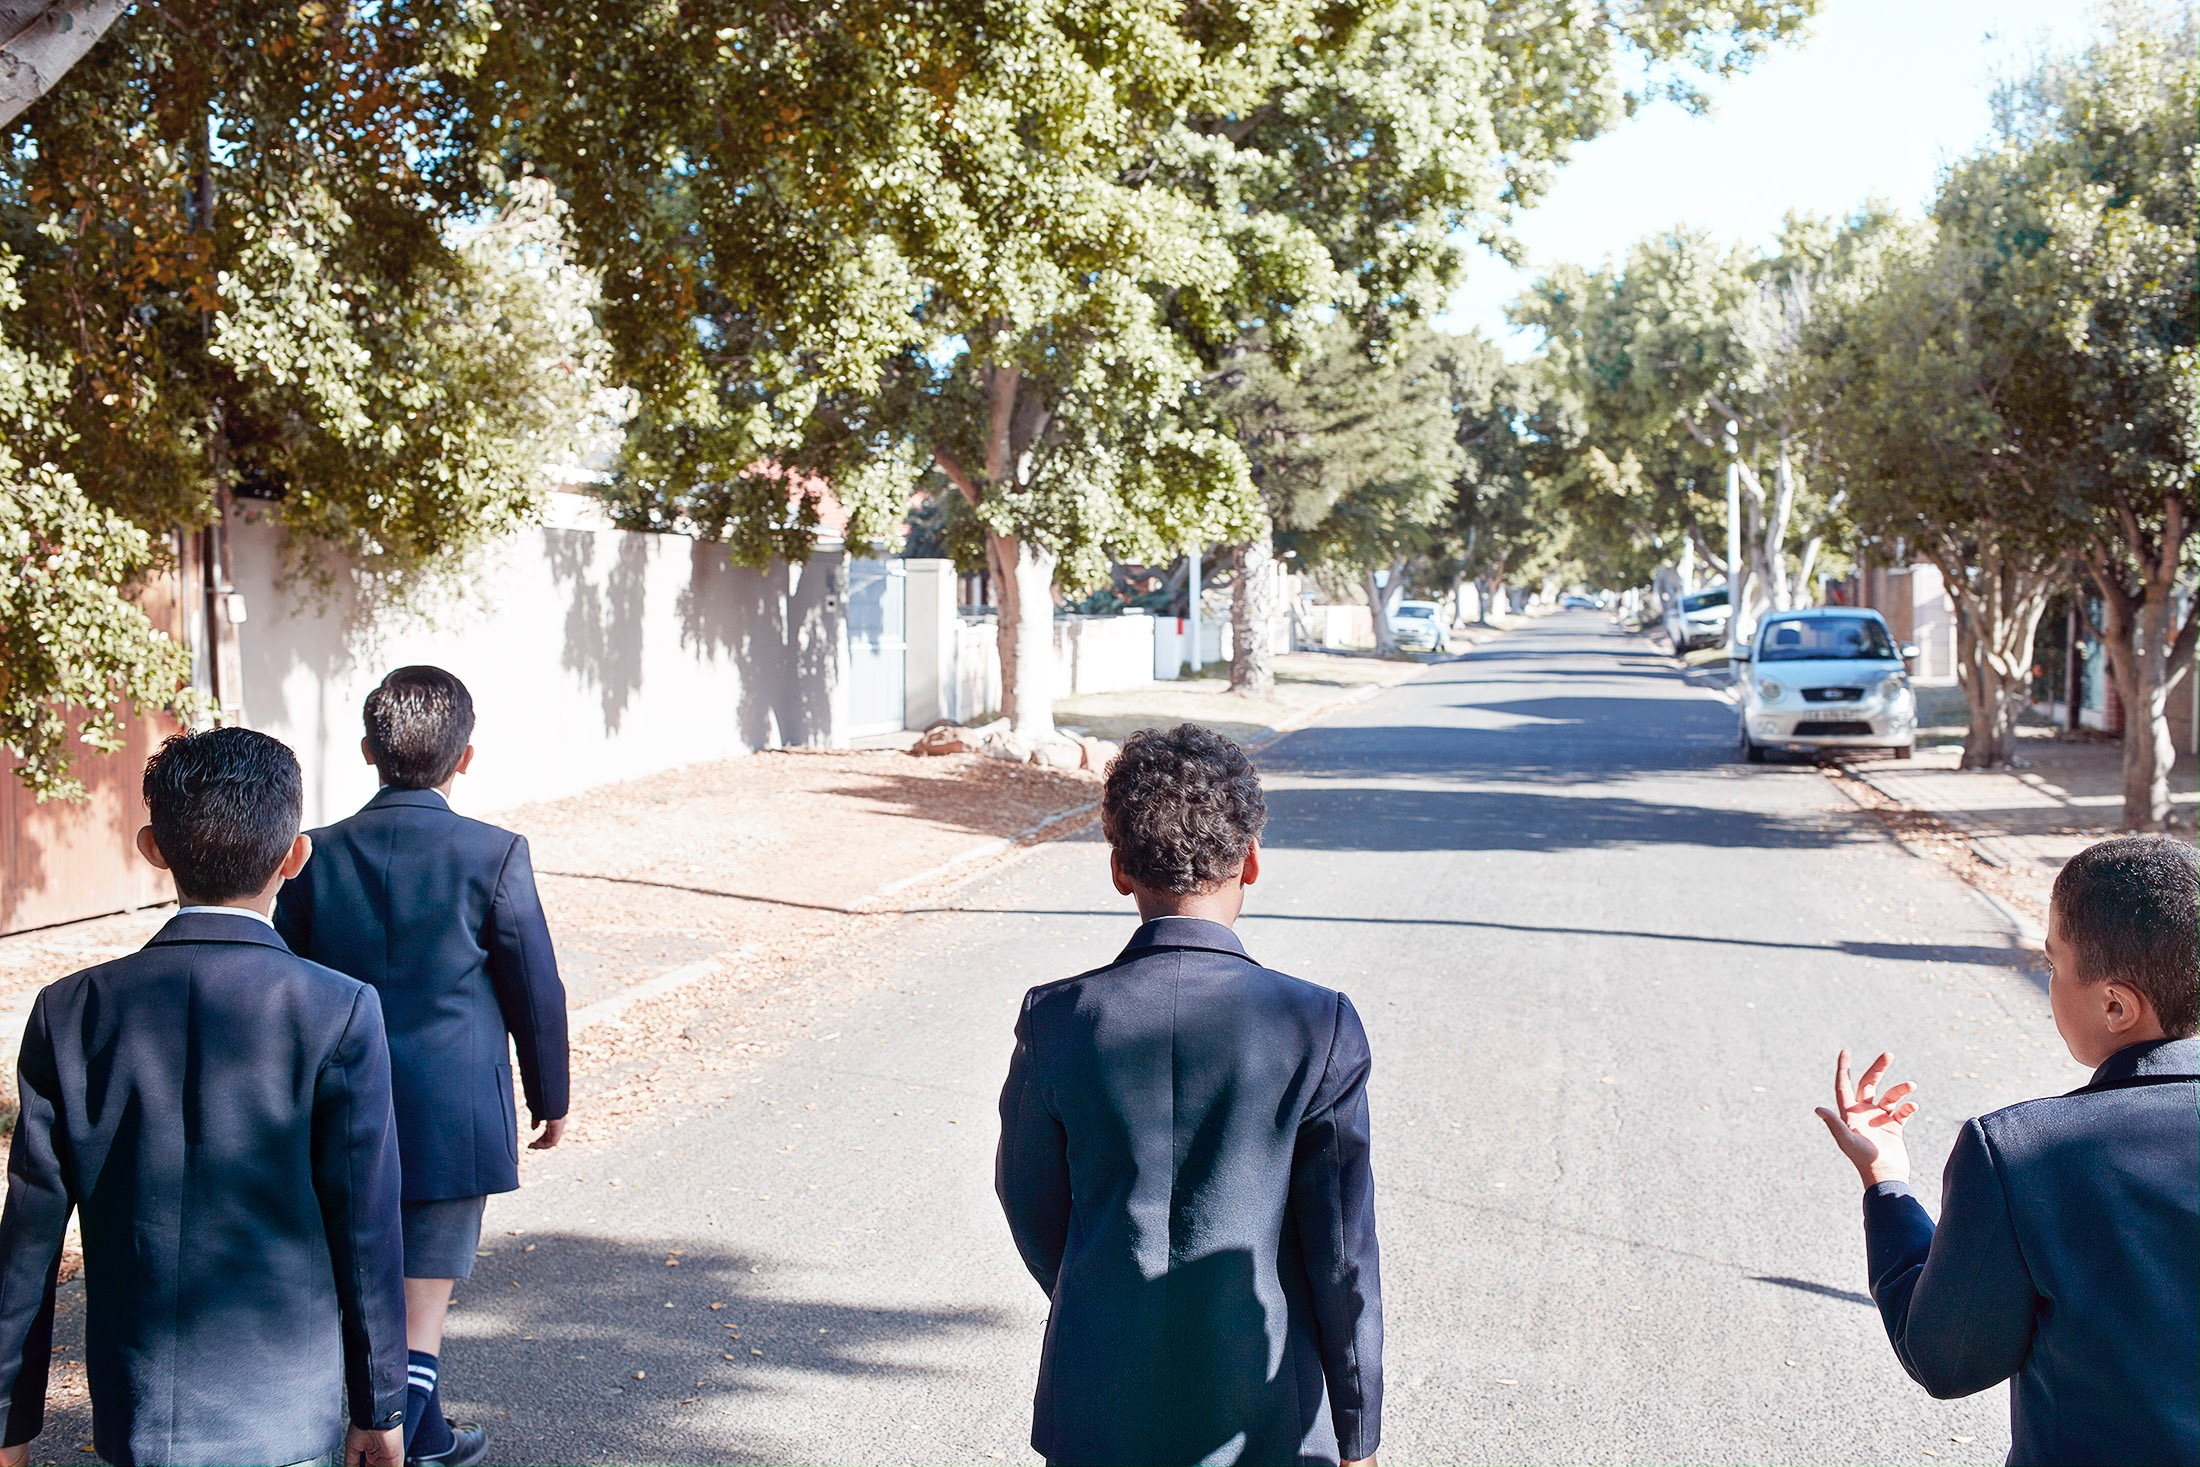 photo photography photographer school uniform education boy boys friends street walk walking backside